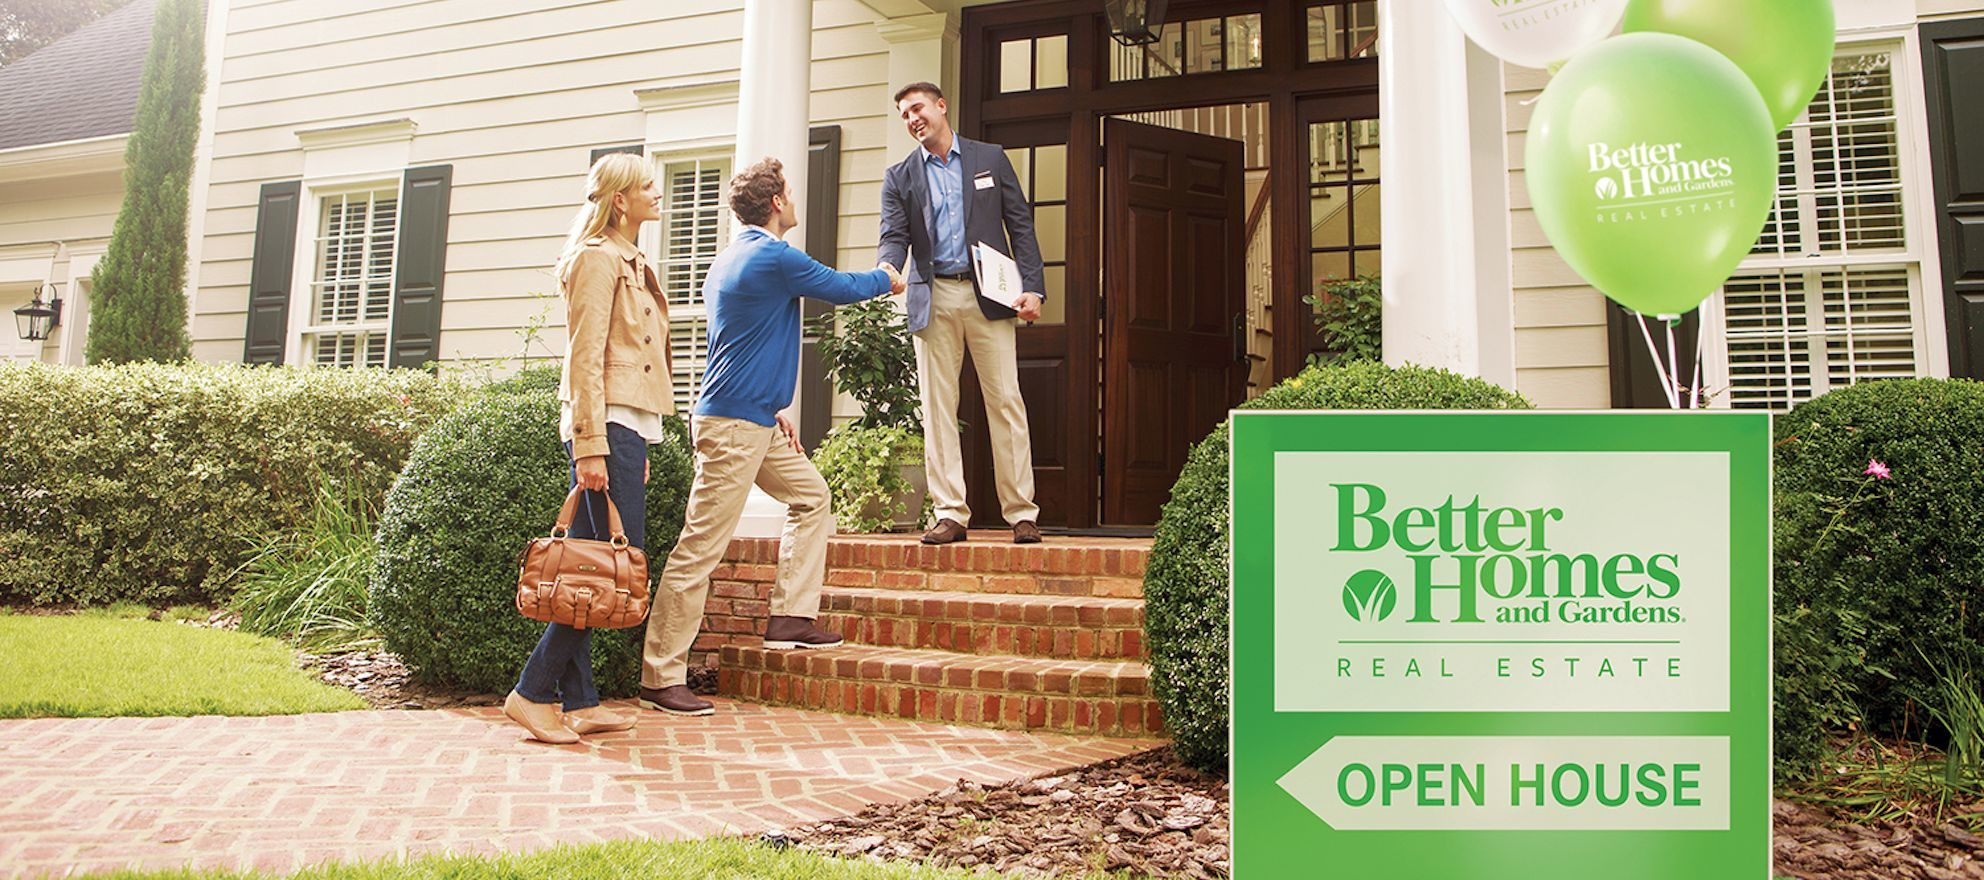 Better Homes and Gardens Real Estate expands to Oklahoma